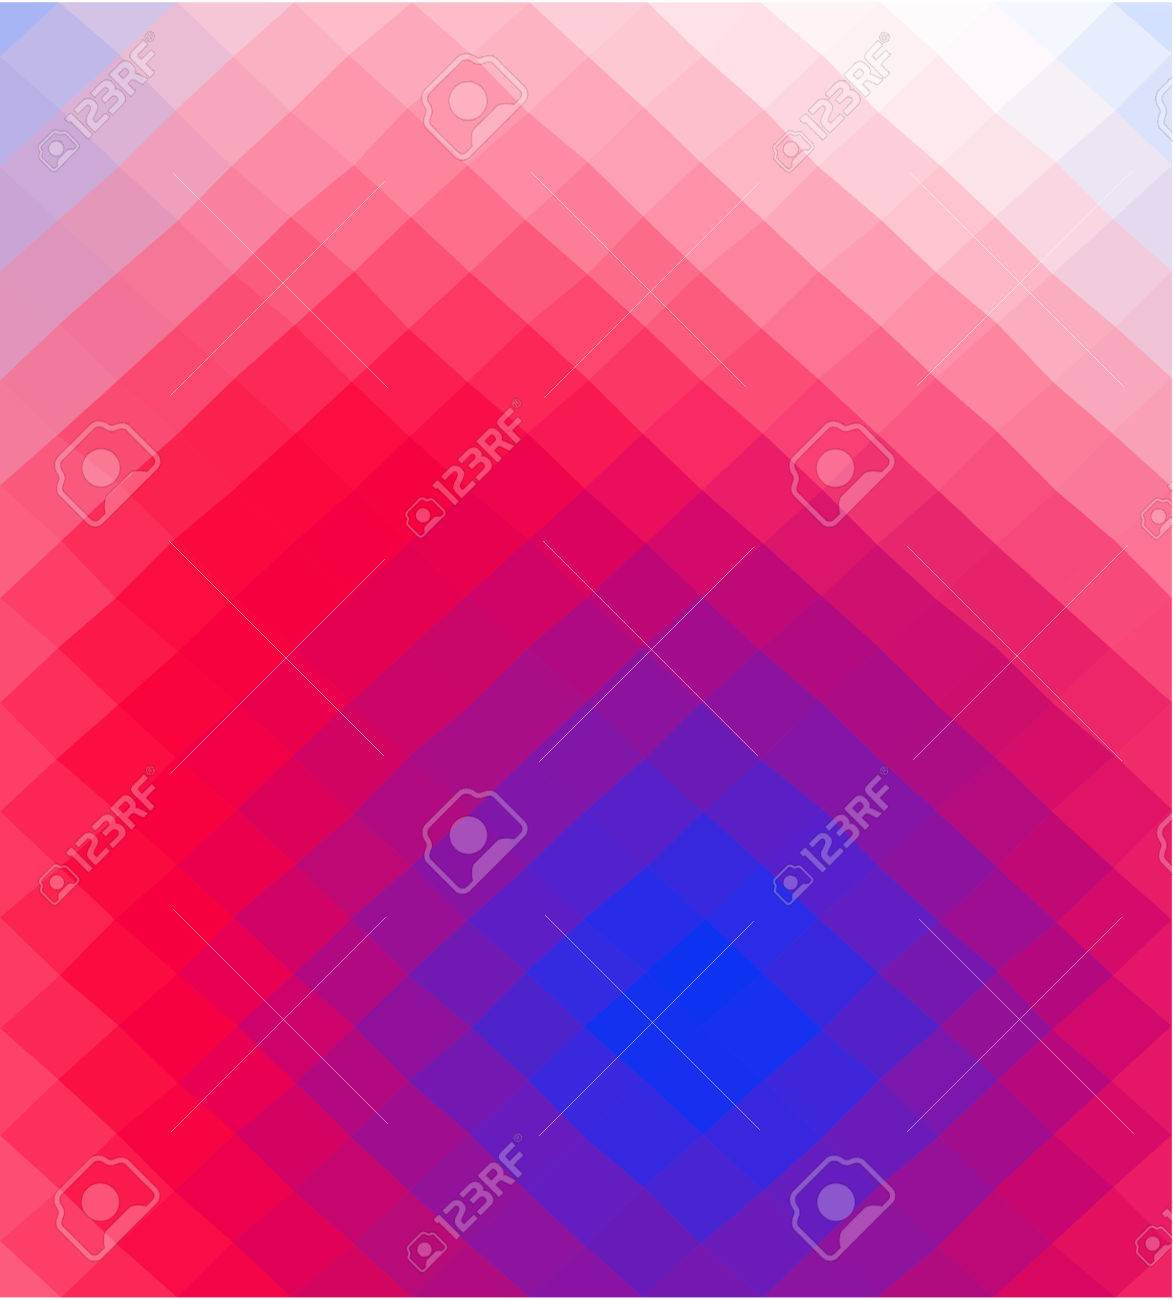 Abstract Blue Red White Low Poly Squared Business Background